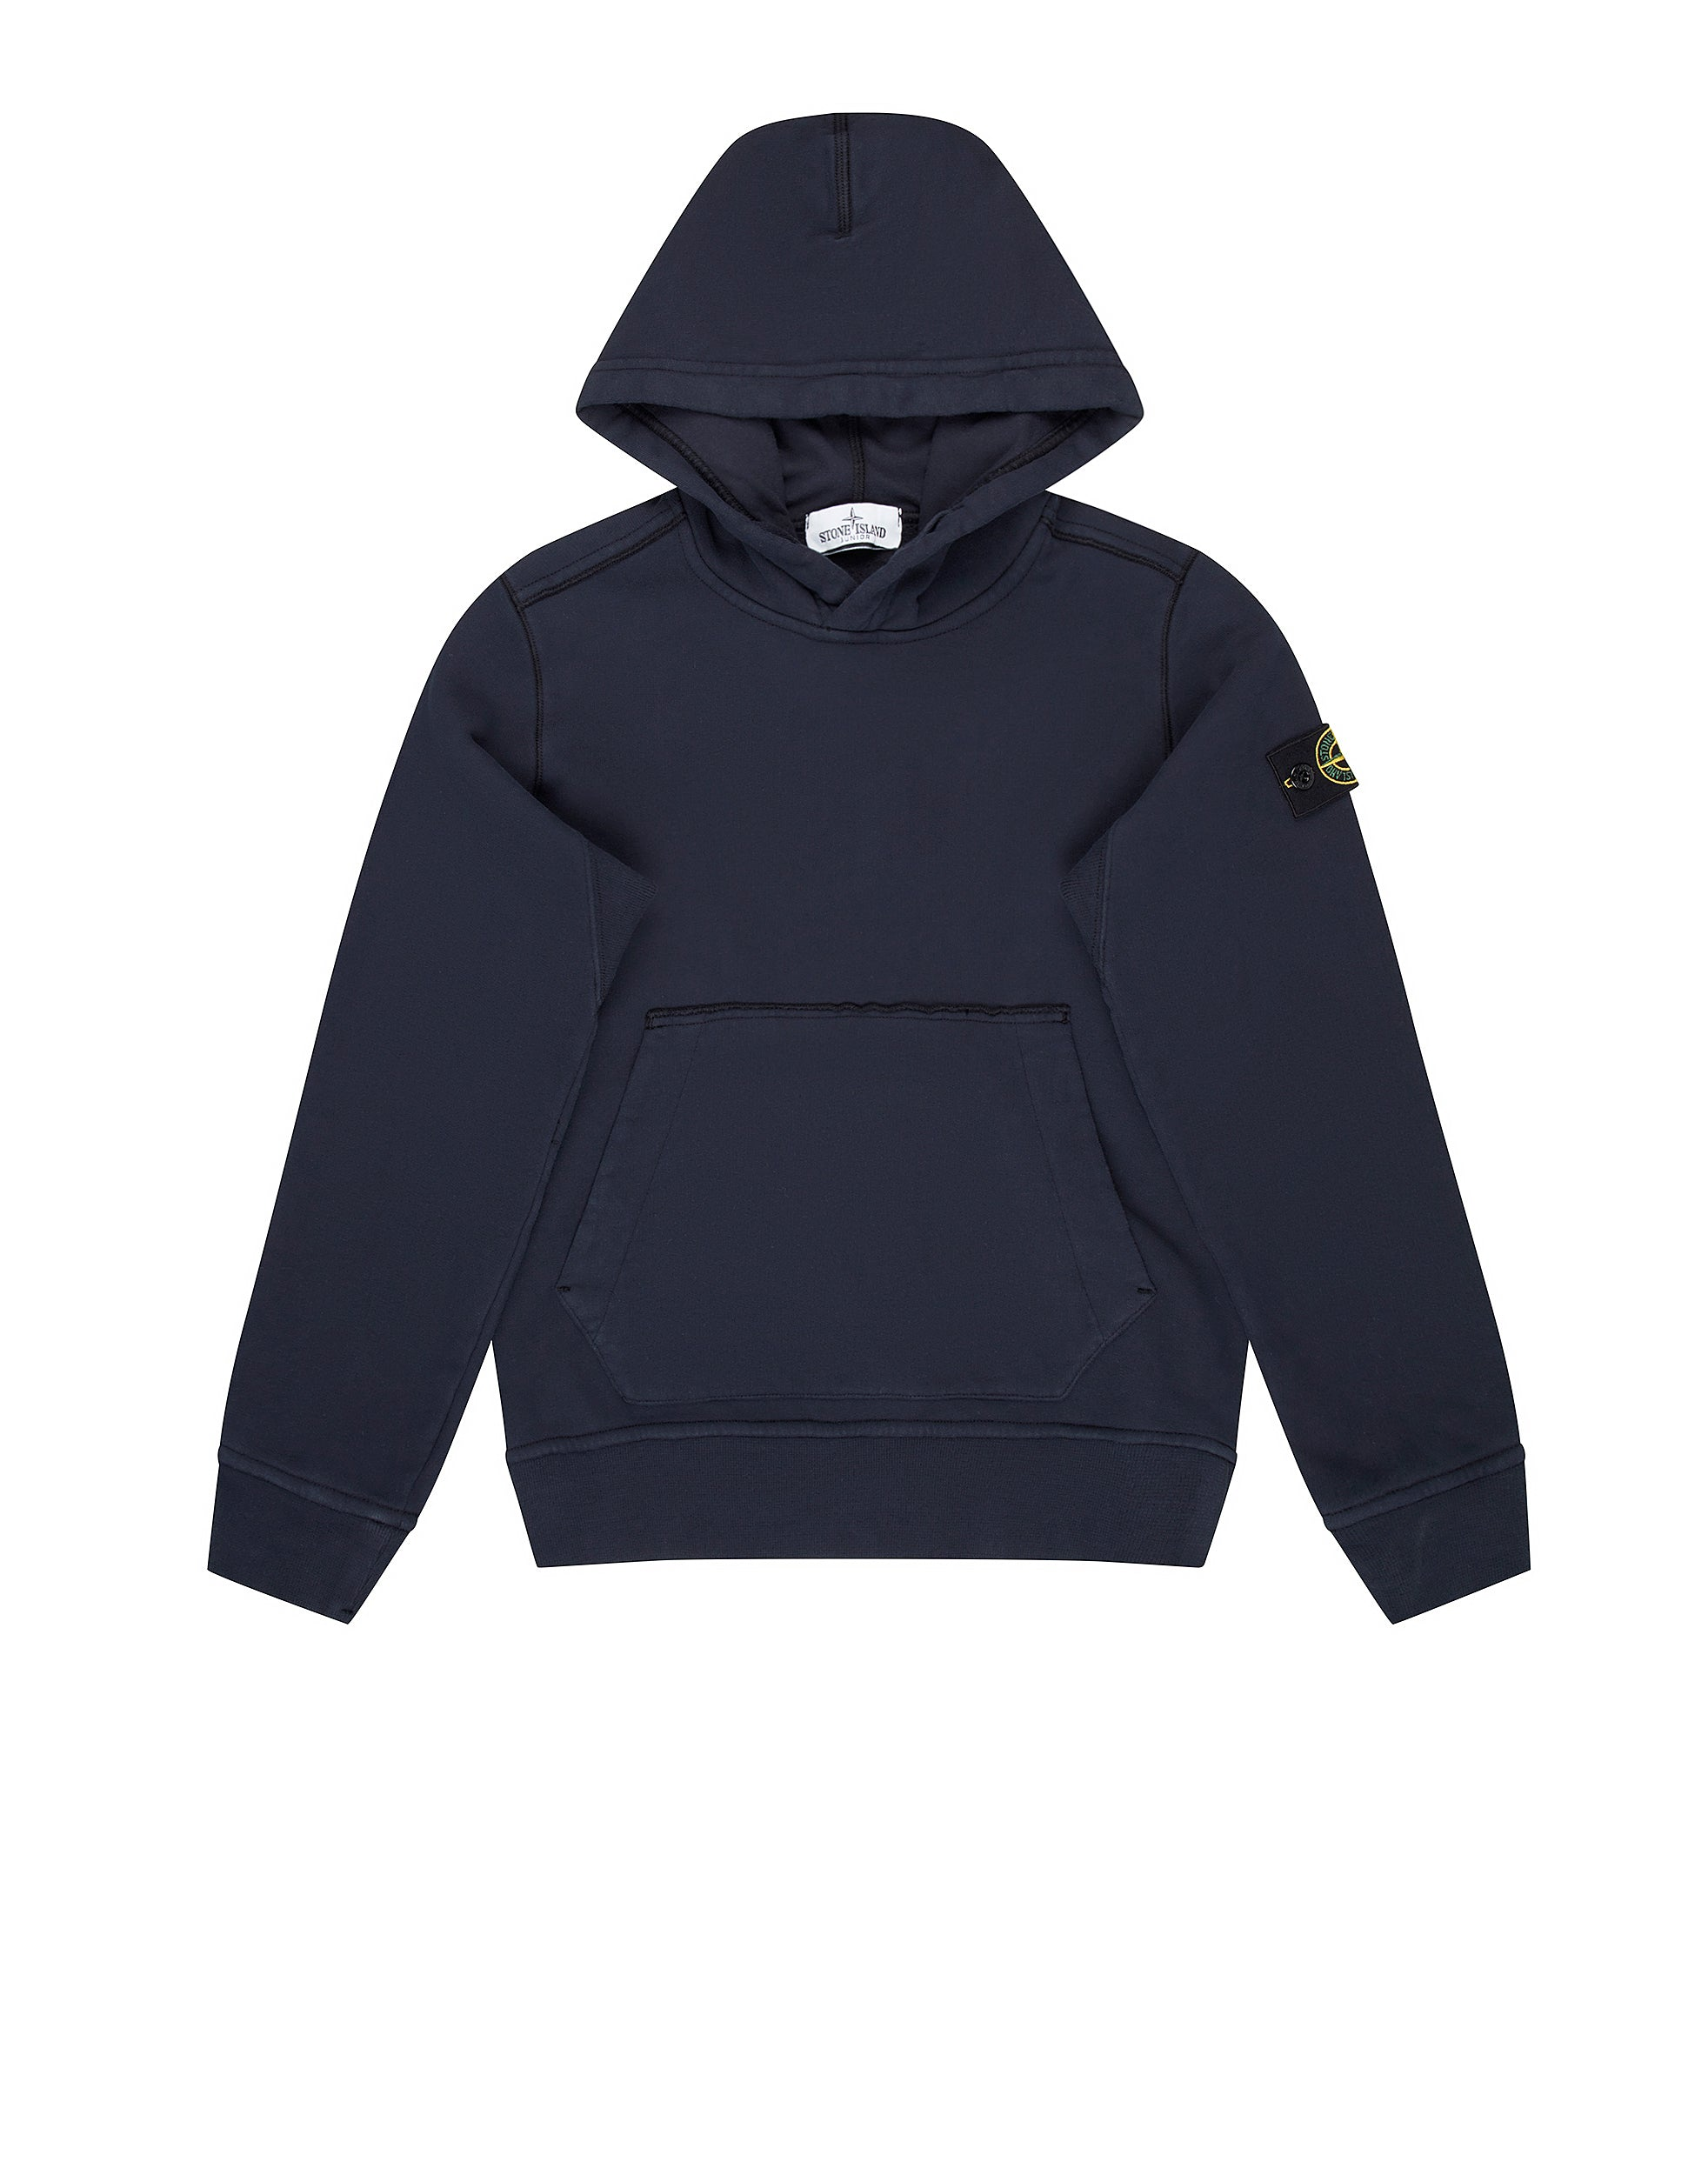 61140 Pullover Sweatshirt in Navy Blue